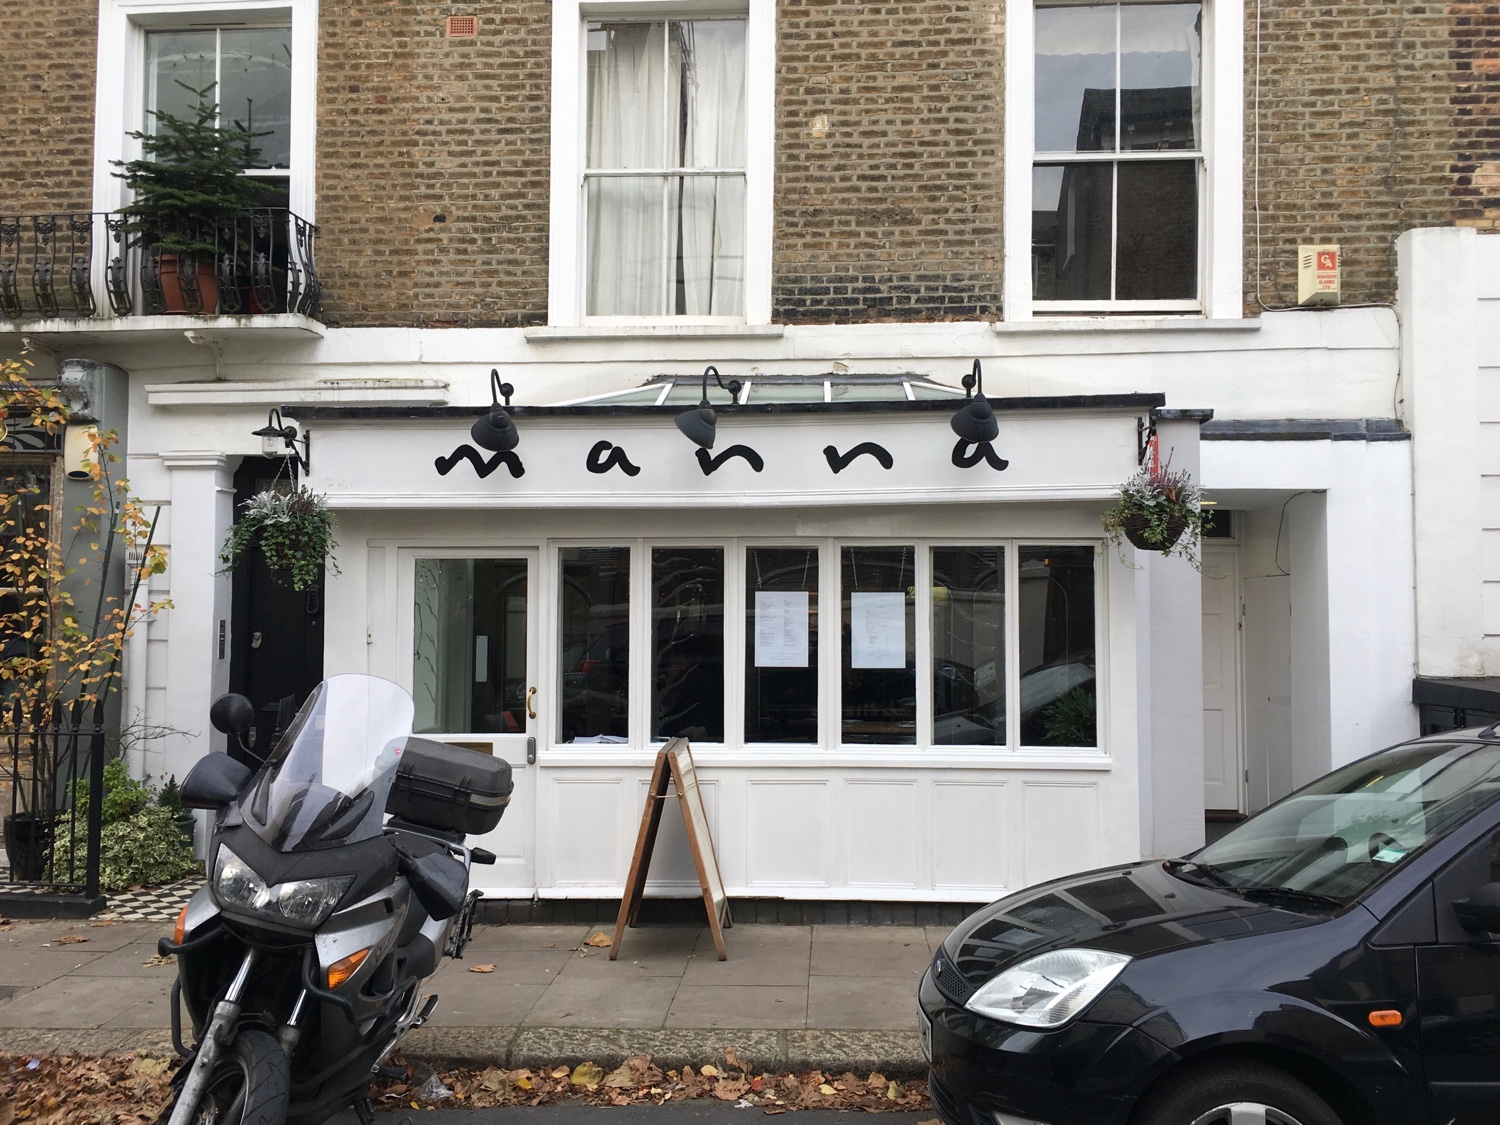 manna_vegan_restaurant_oldest_vegan_restaurant_in_london_vegan_travel_3.jpg